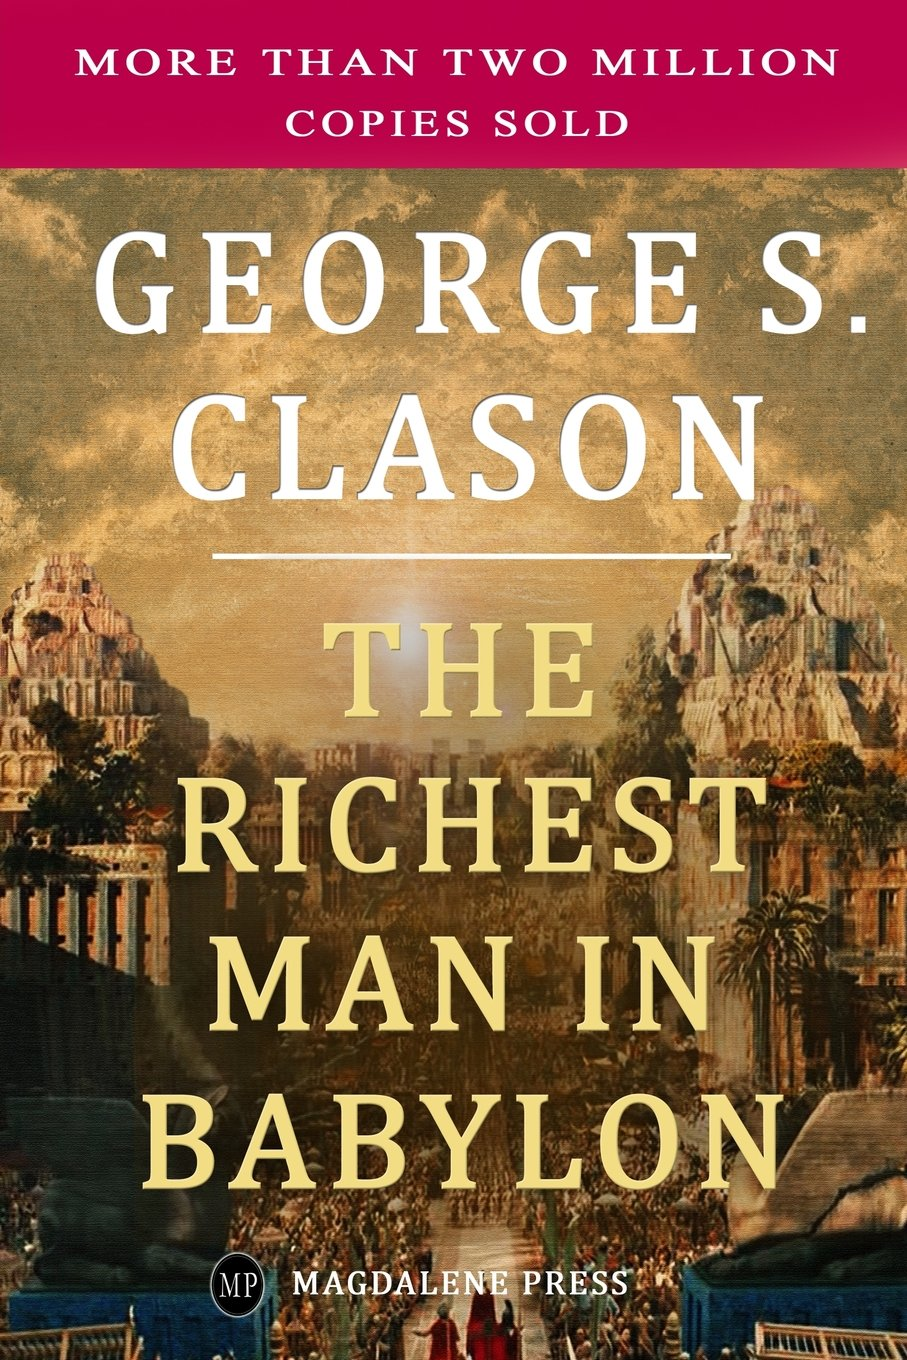 Richest Man Babylon George Clason